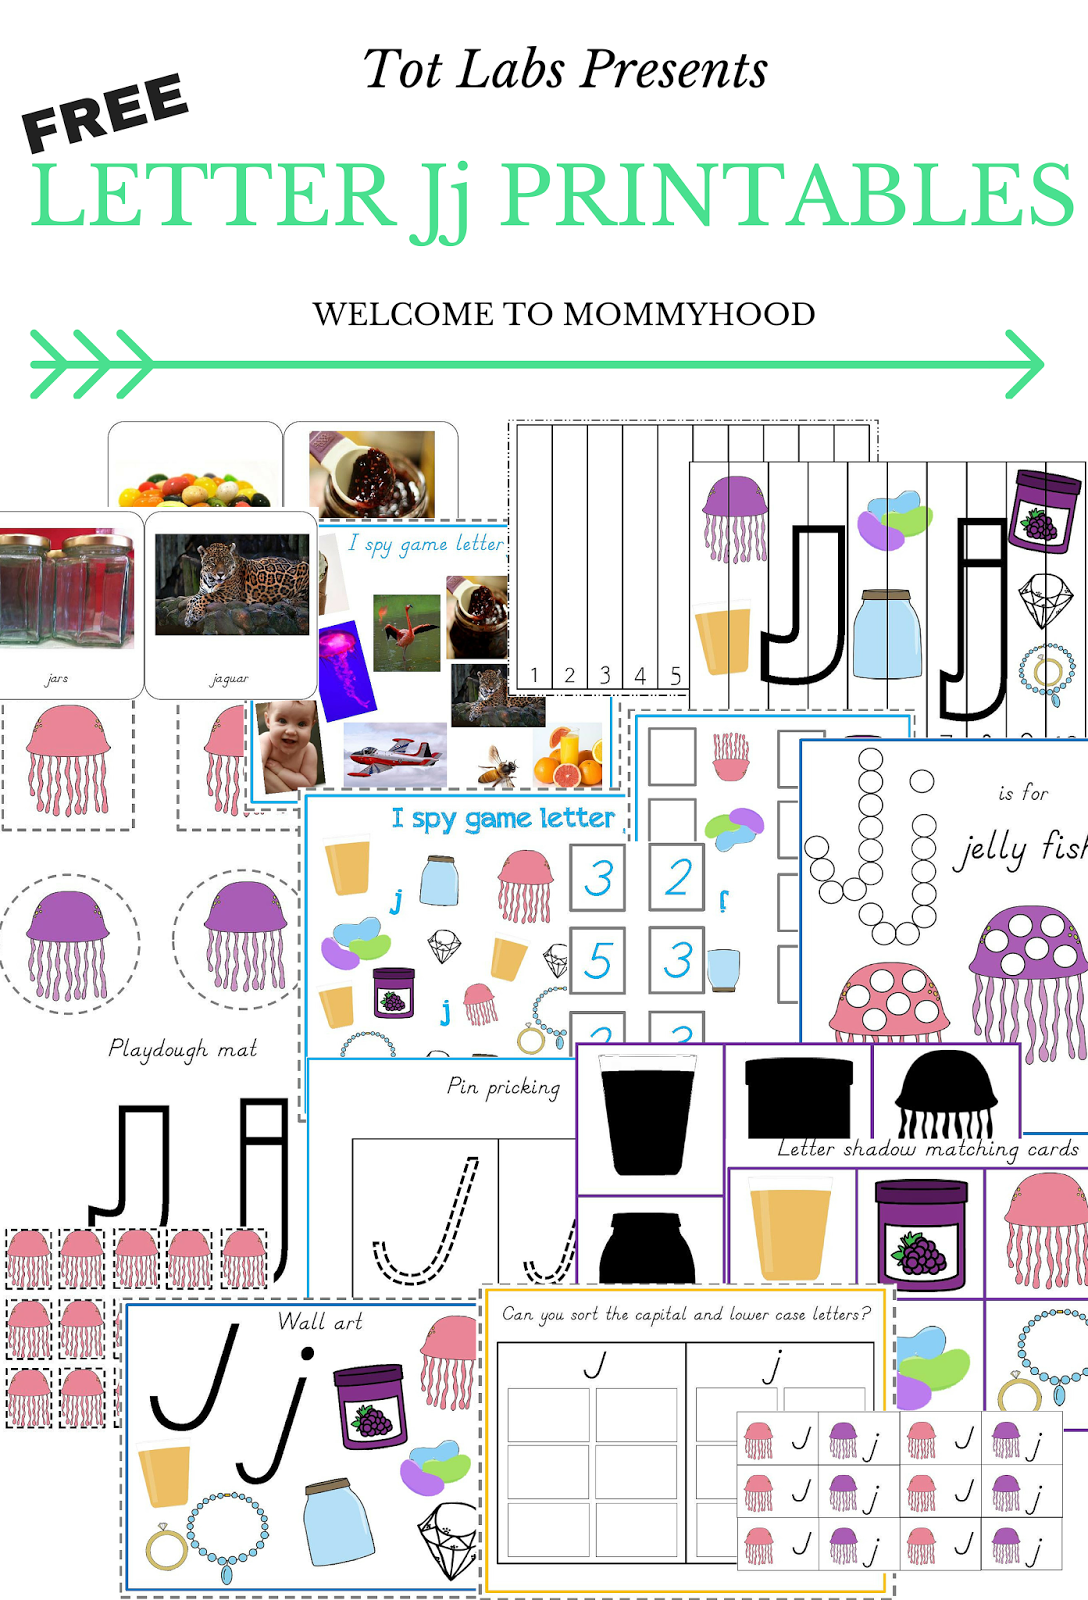 Welcome To Mommyhood Free Letter Jj Printables In English And Russian